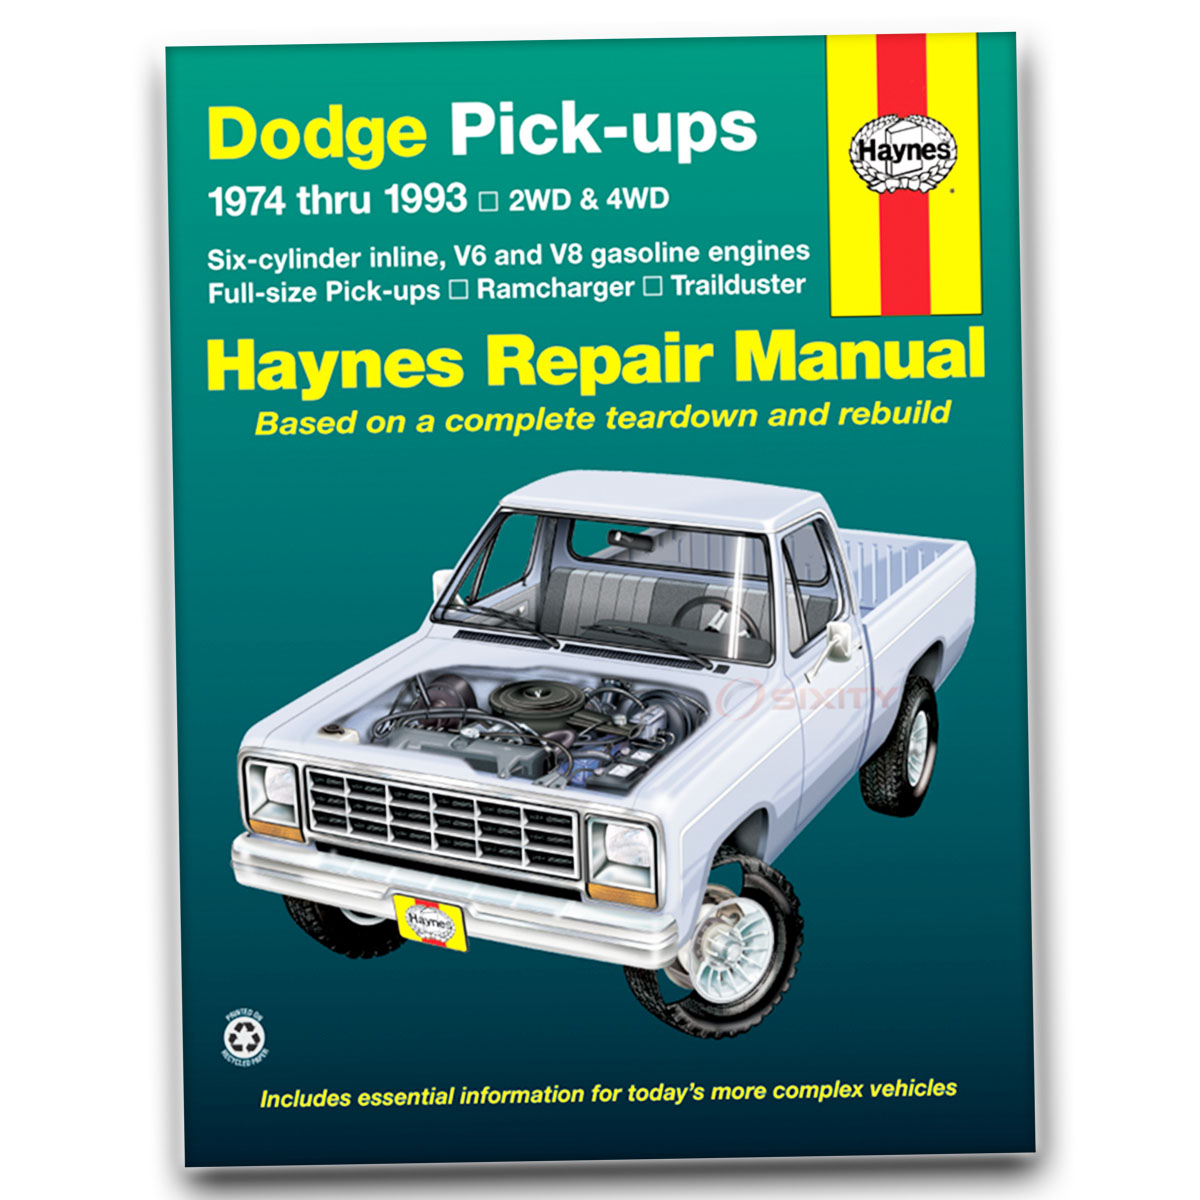 haynes repair manual for dodge d150 s miser base shop service garage rh ebay com haynes repair manual download haynes repair manuals for sale